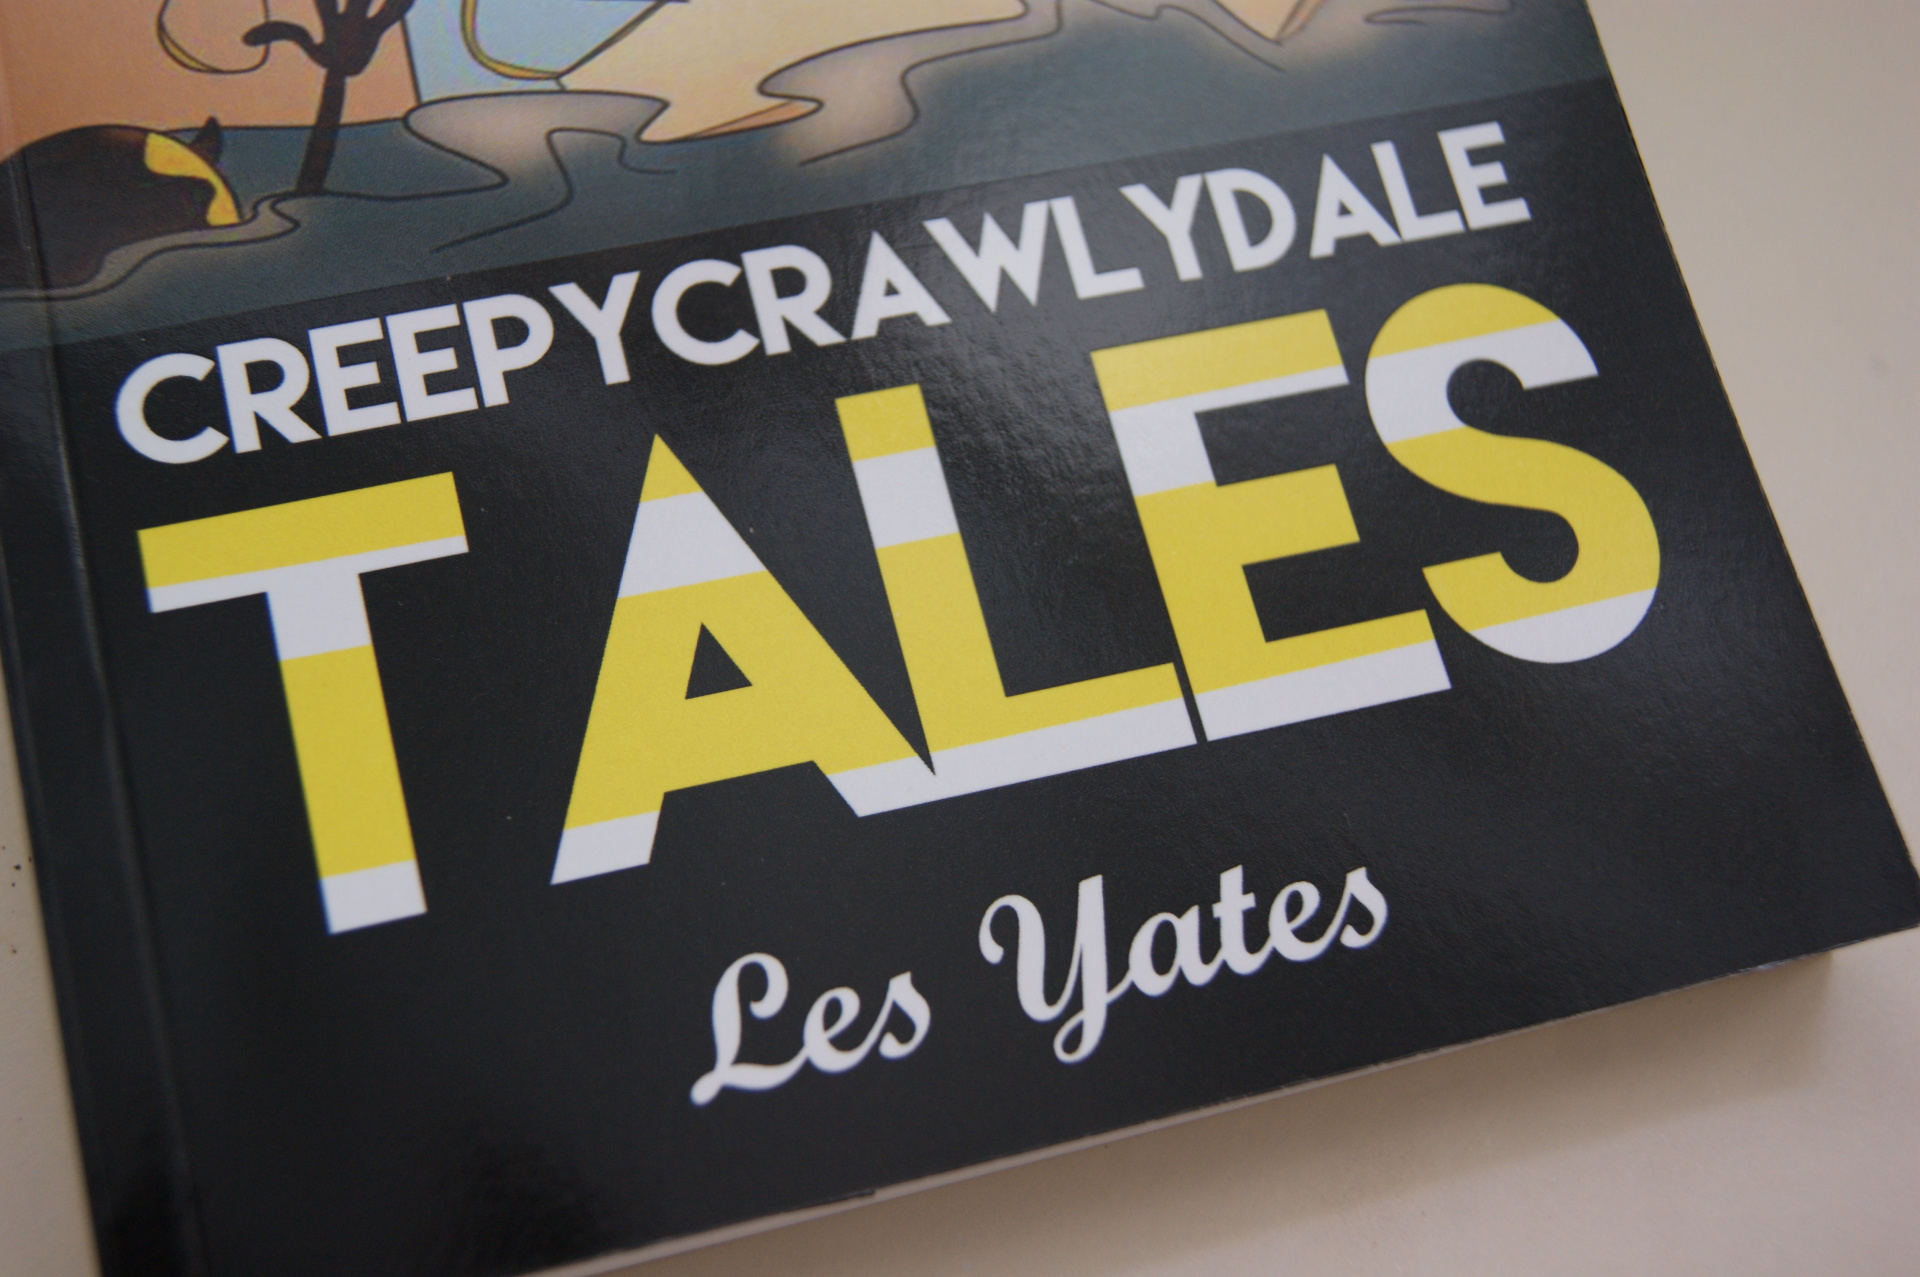 Les Yates - CreepyCrawlyDale Tales - Book Review